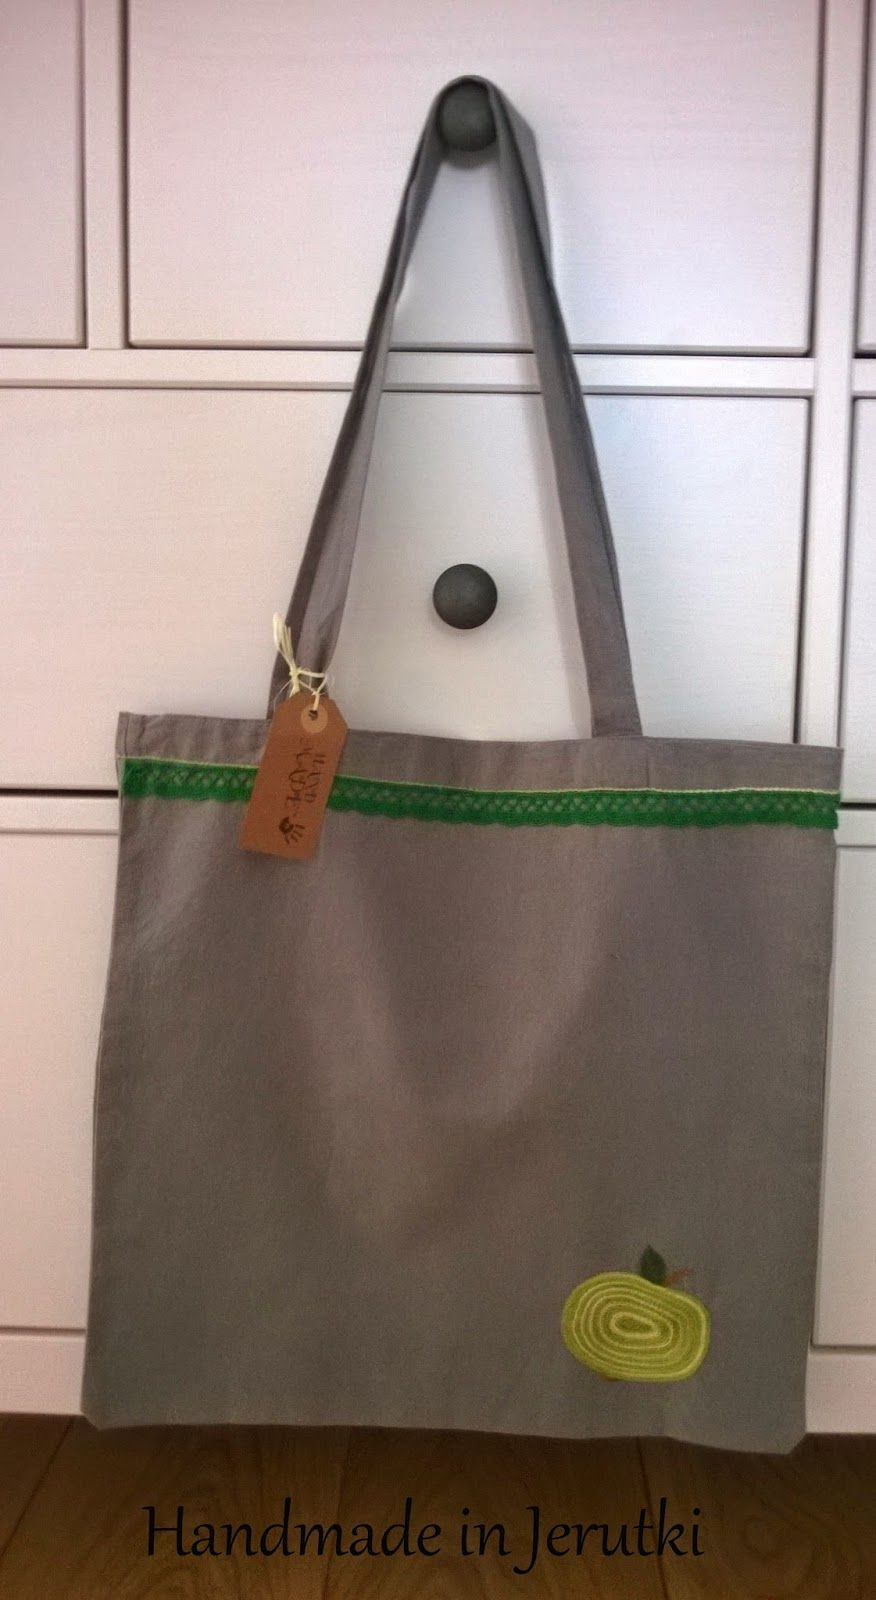 Handmade in Jerutki: Bawełniana torba / shopping bag